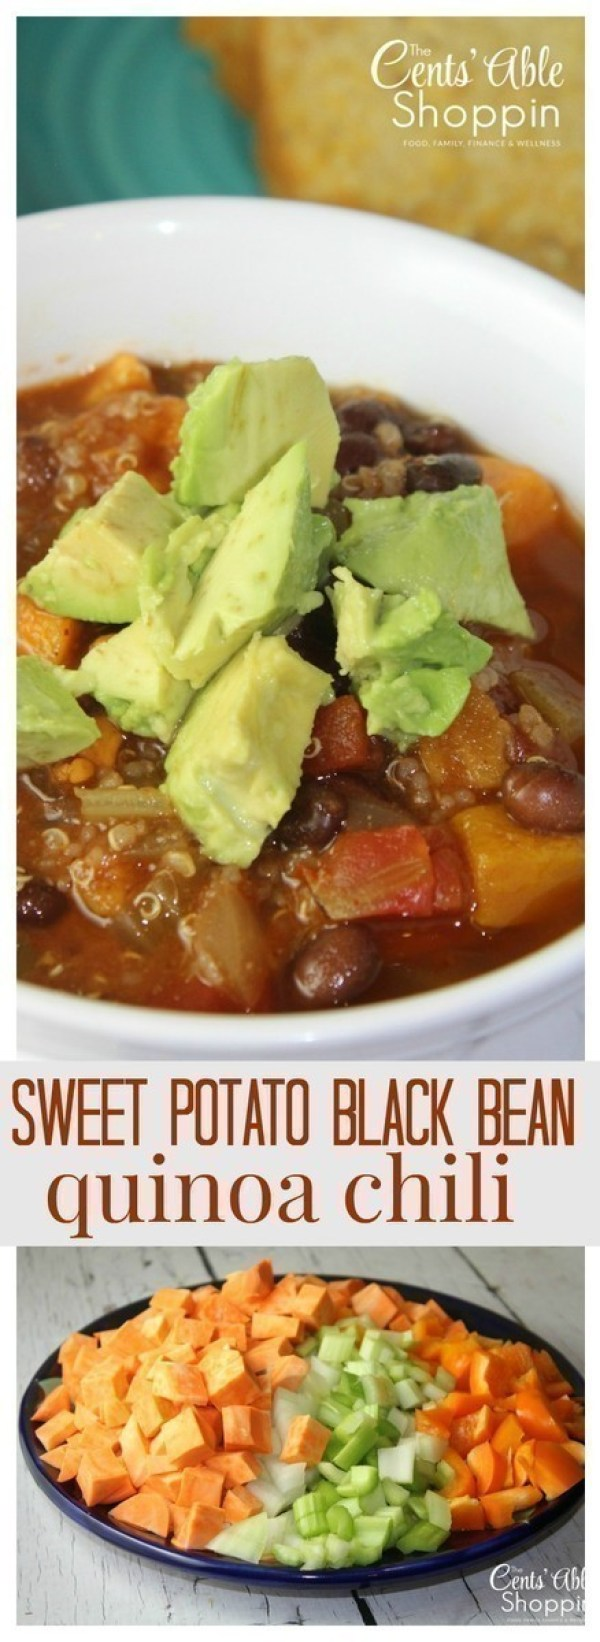 Sweet Potato Black Bean Quinoa Chili